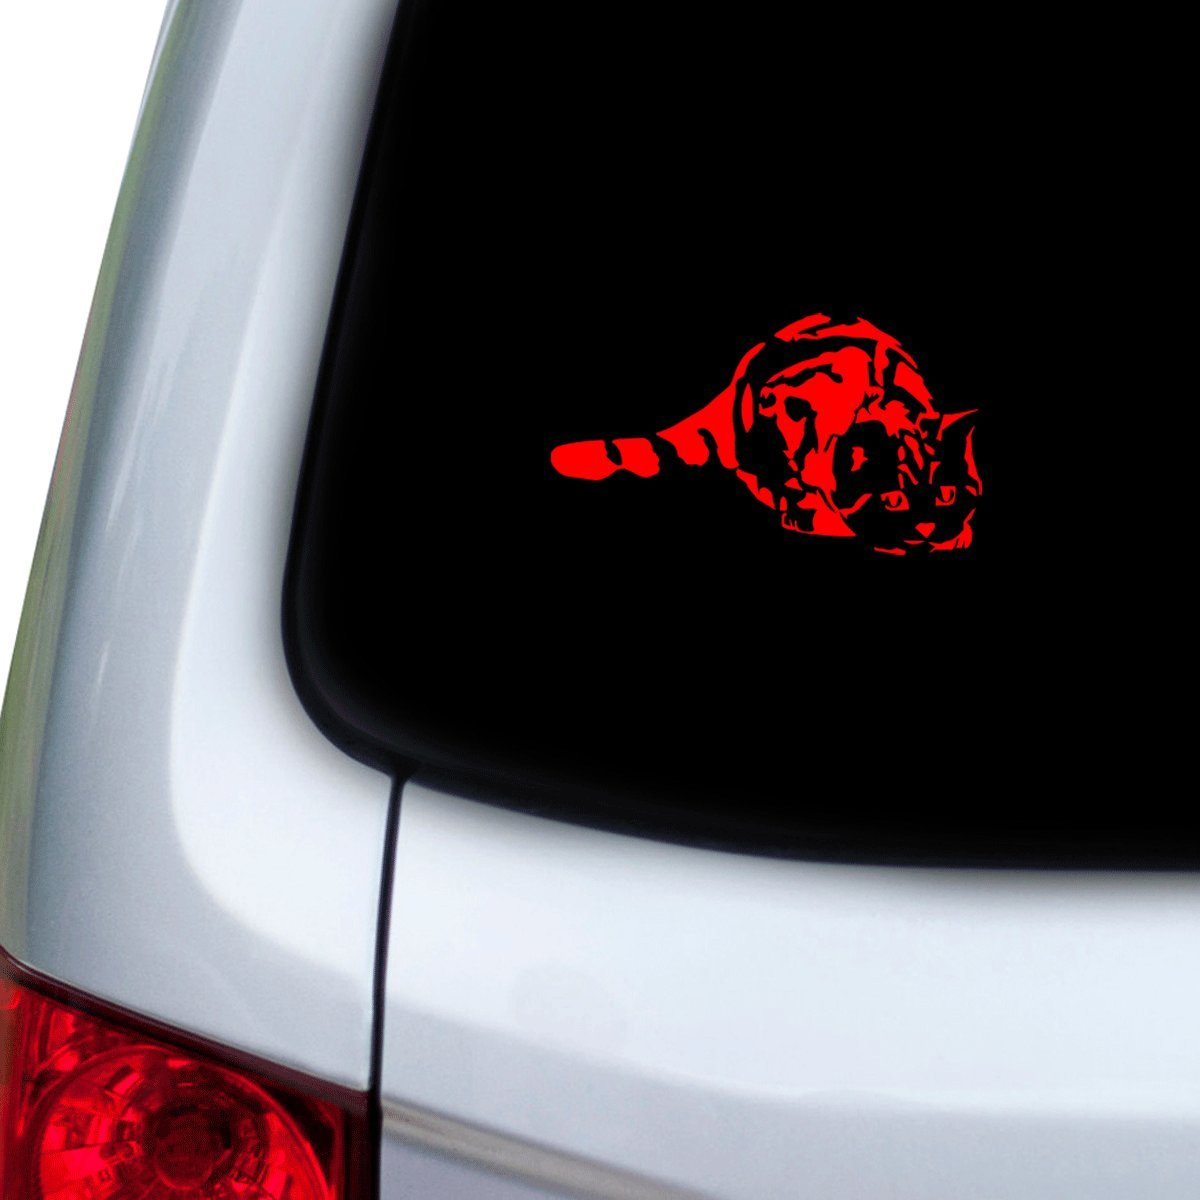 StickAny Car and Auto Decal Series Cat Pounce Sticker for Windows Red Doors Hoods